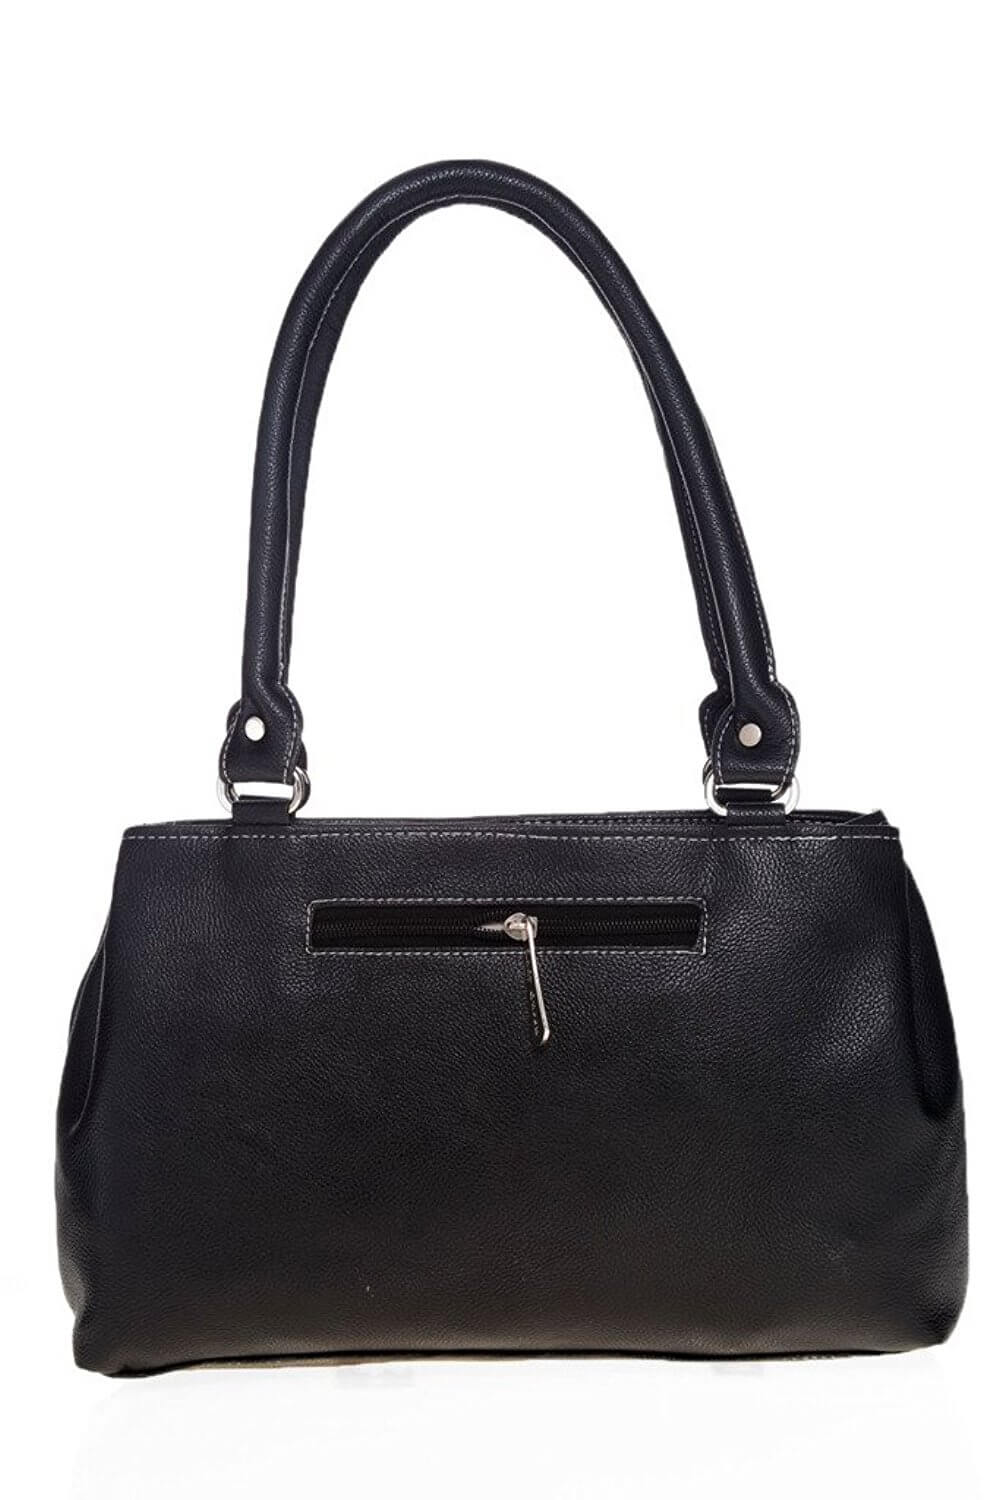 Lady queen casual bag LD - 357